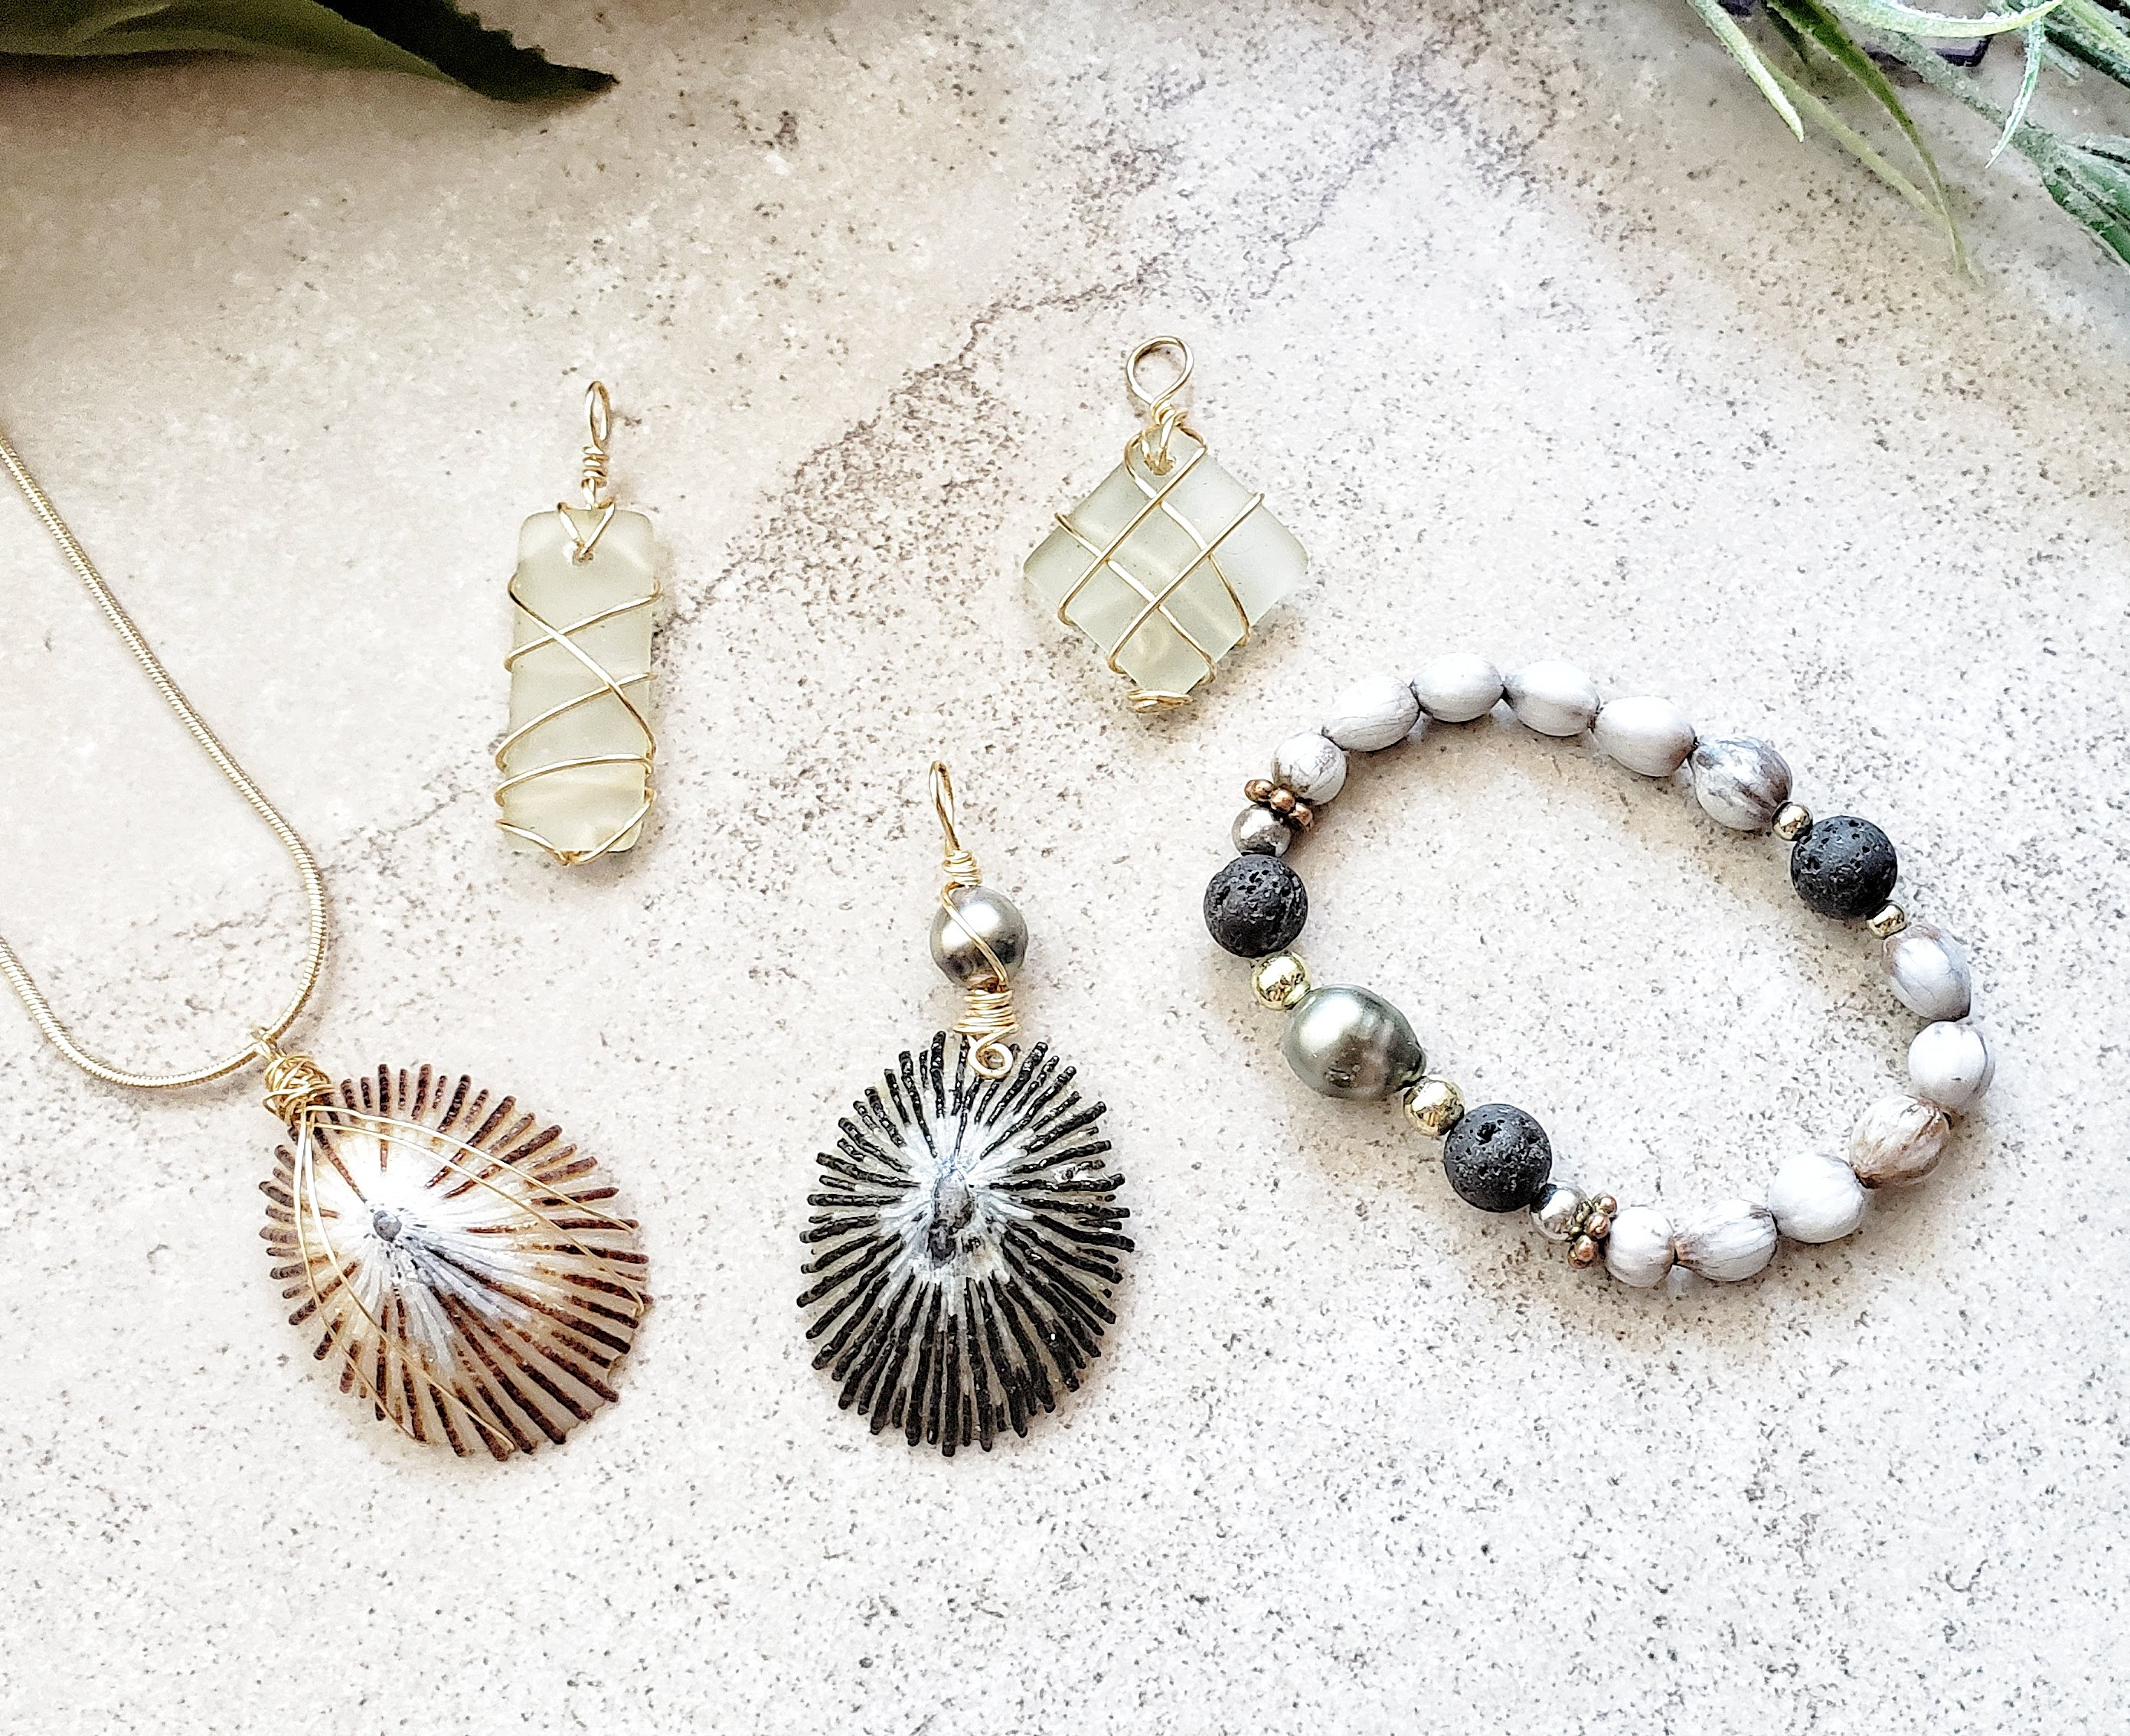 Making Jewelry - How I'm KeepinMy Creative Juices Flowing